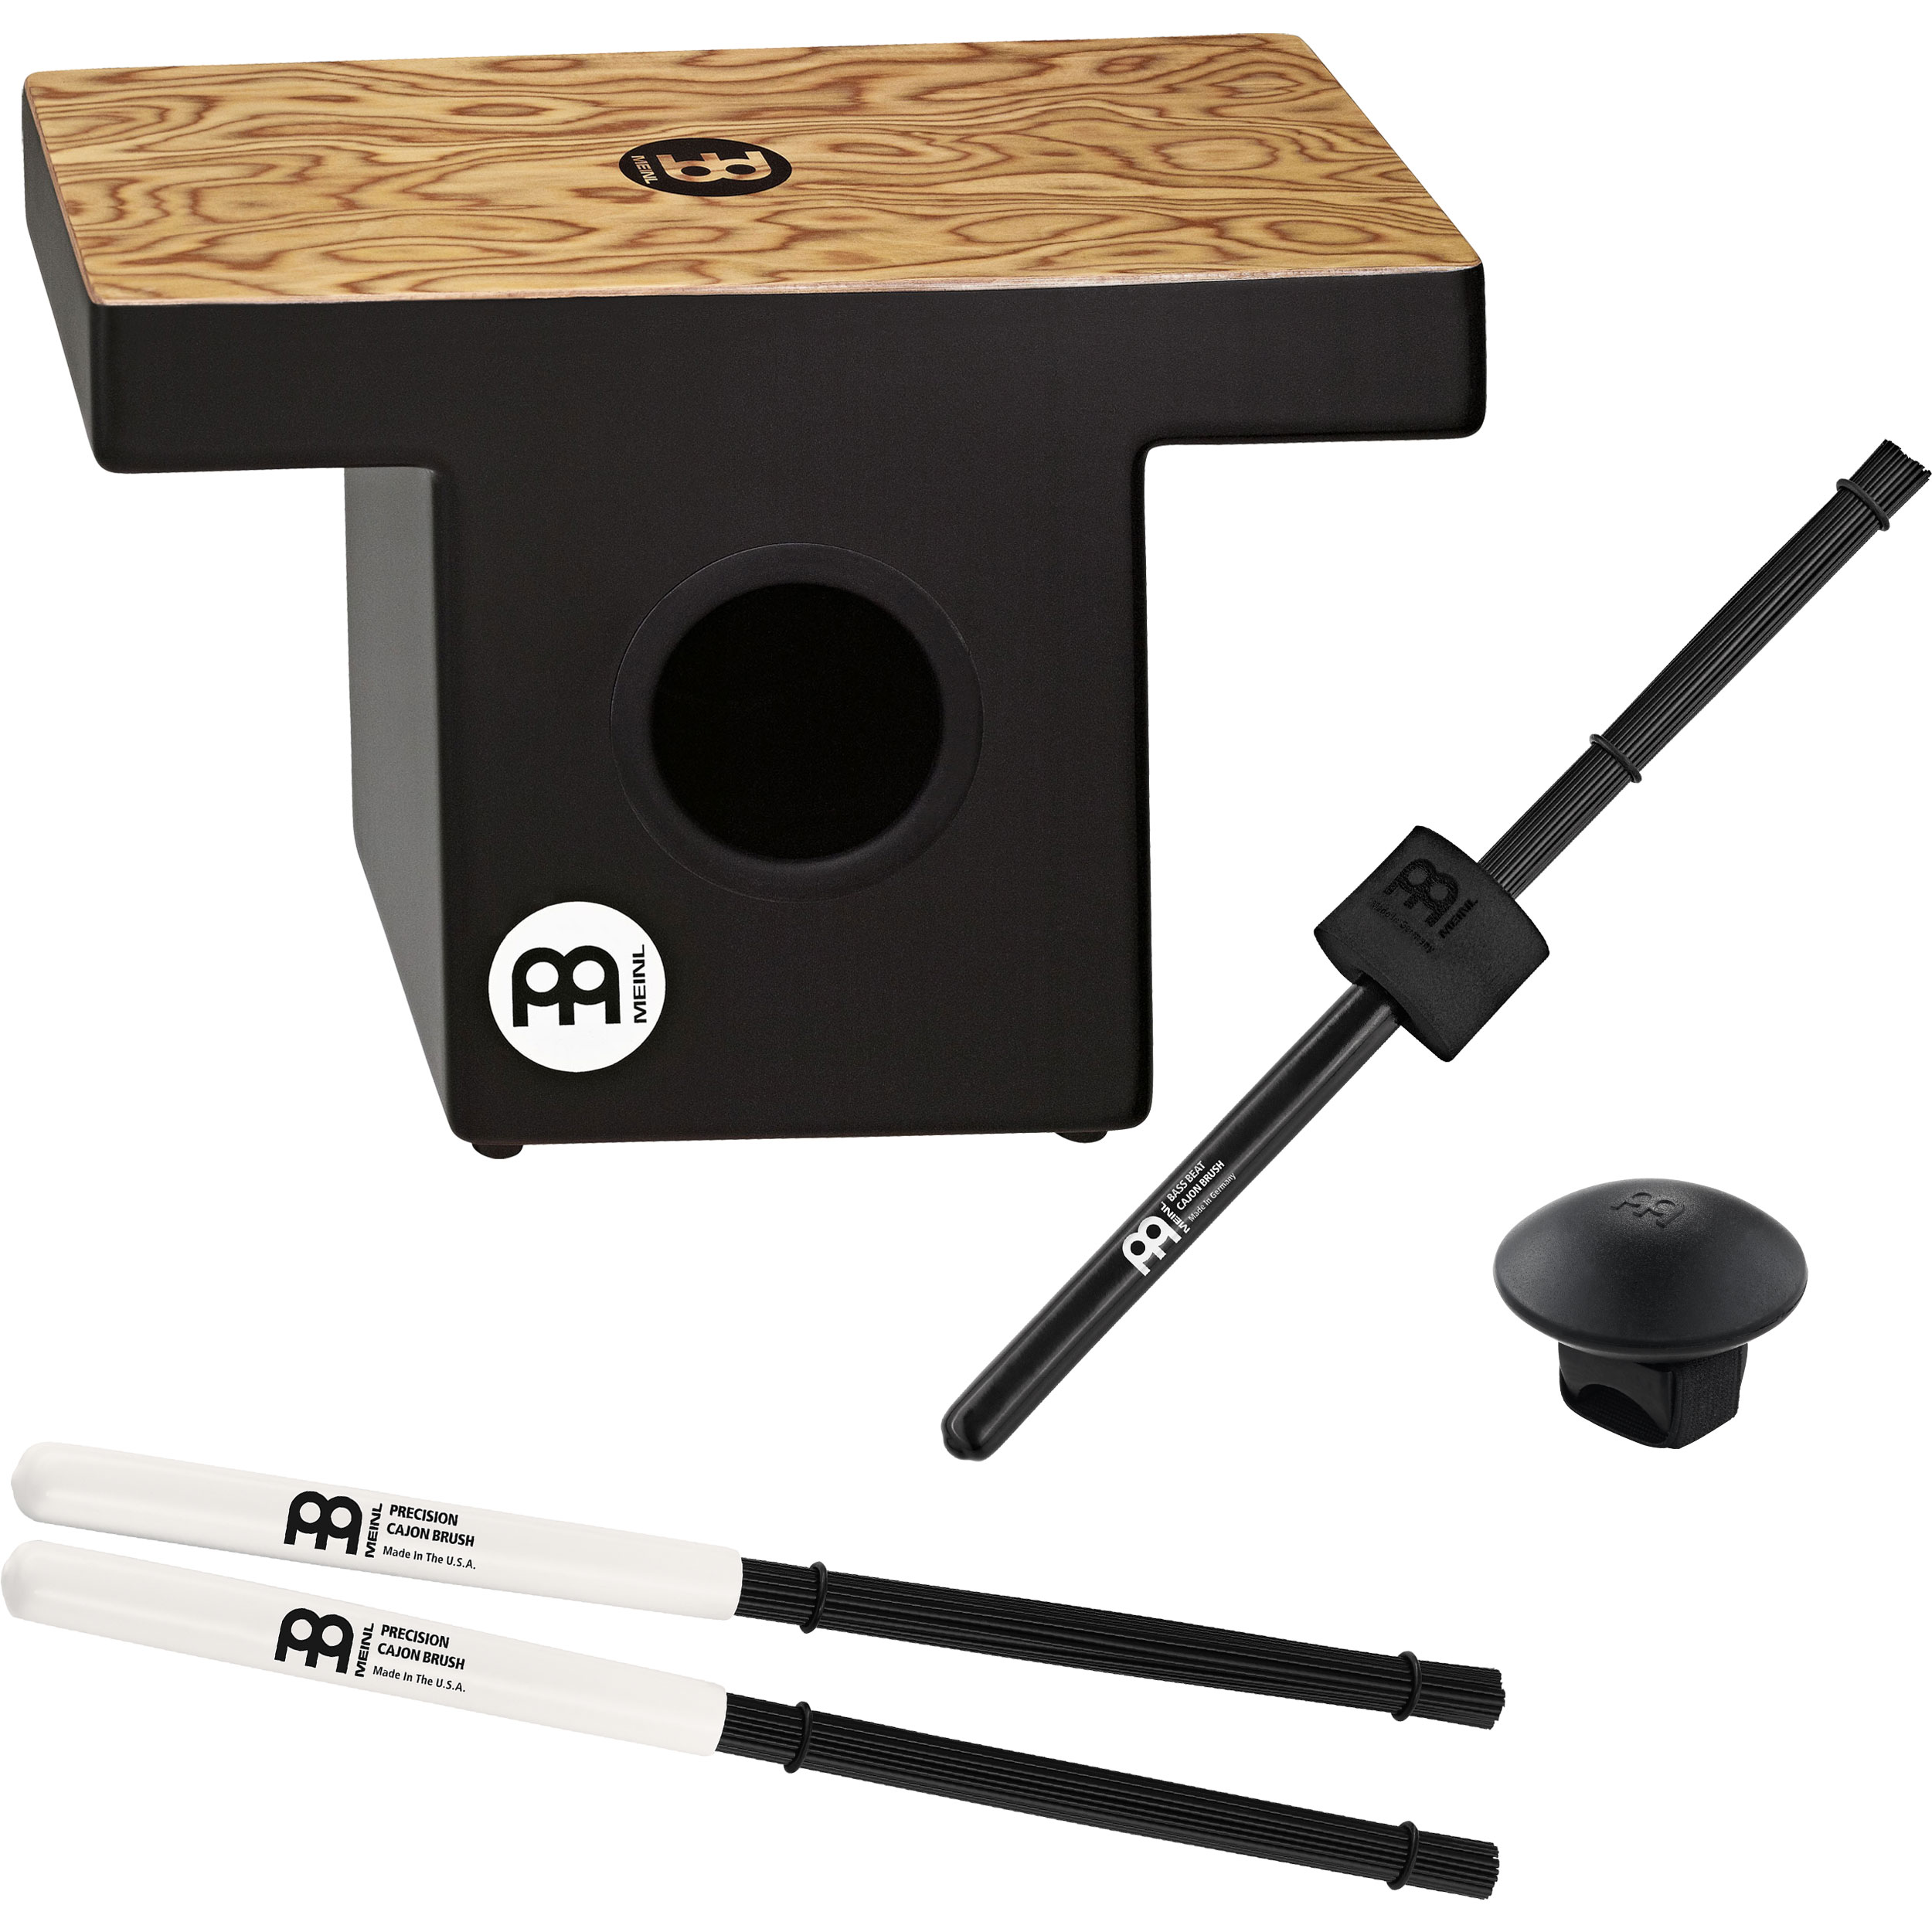 Meinl Limited Edition Slap-Top Cajon Groove Package